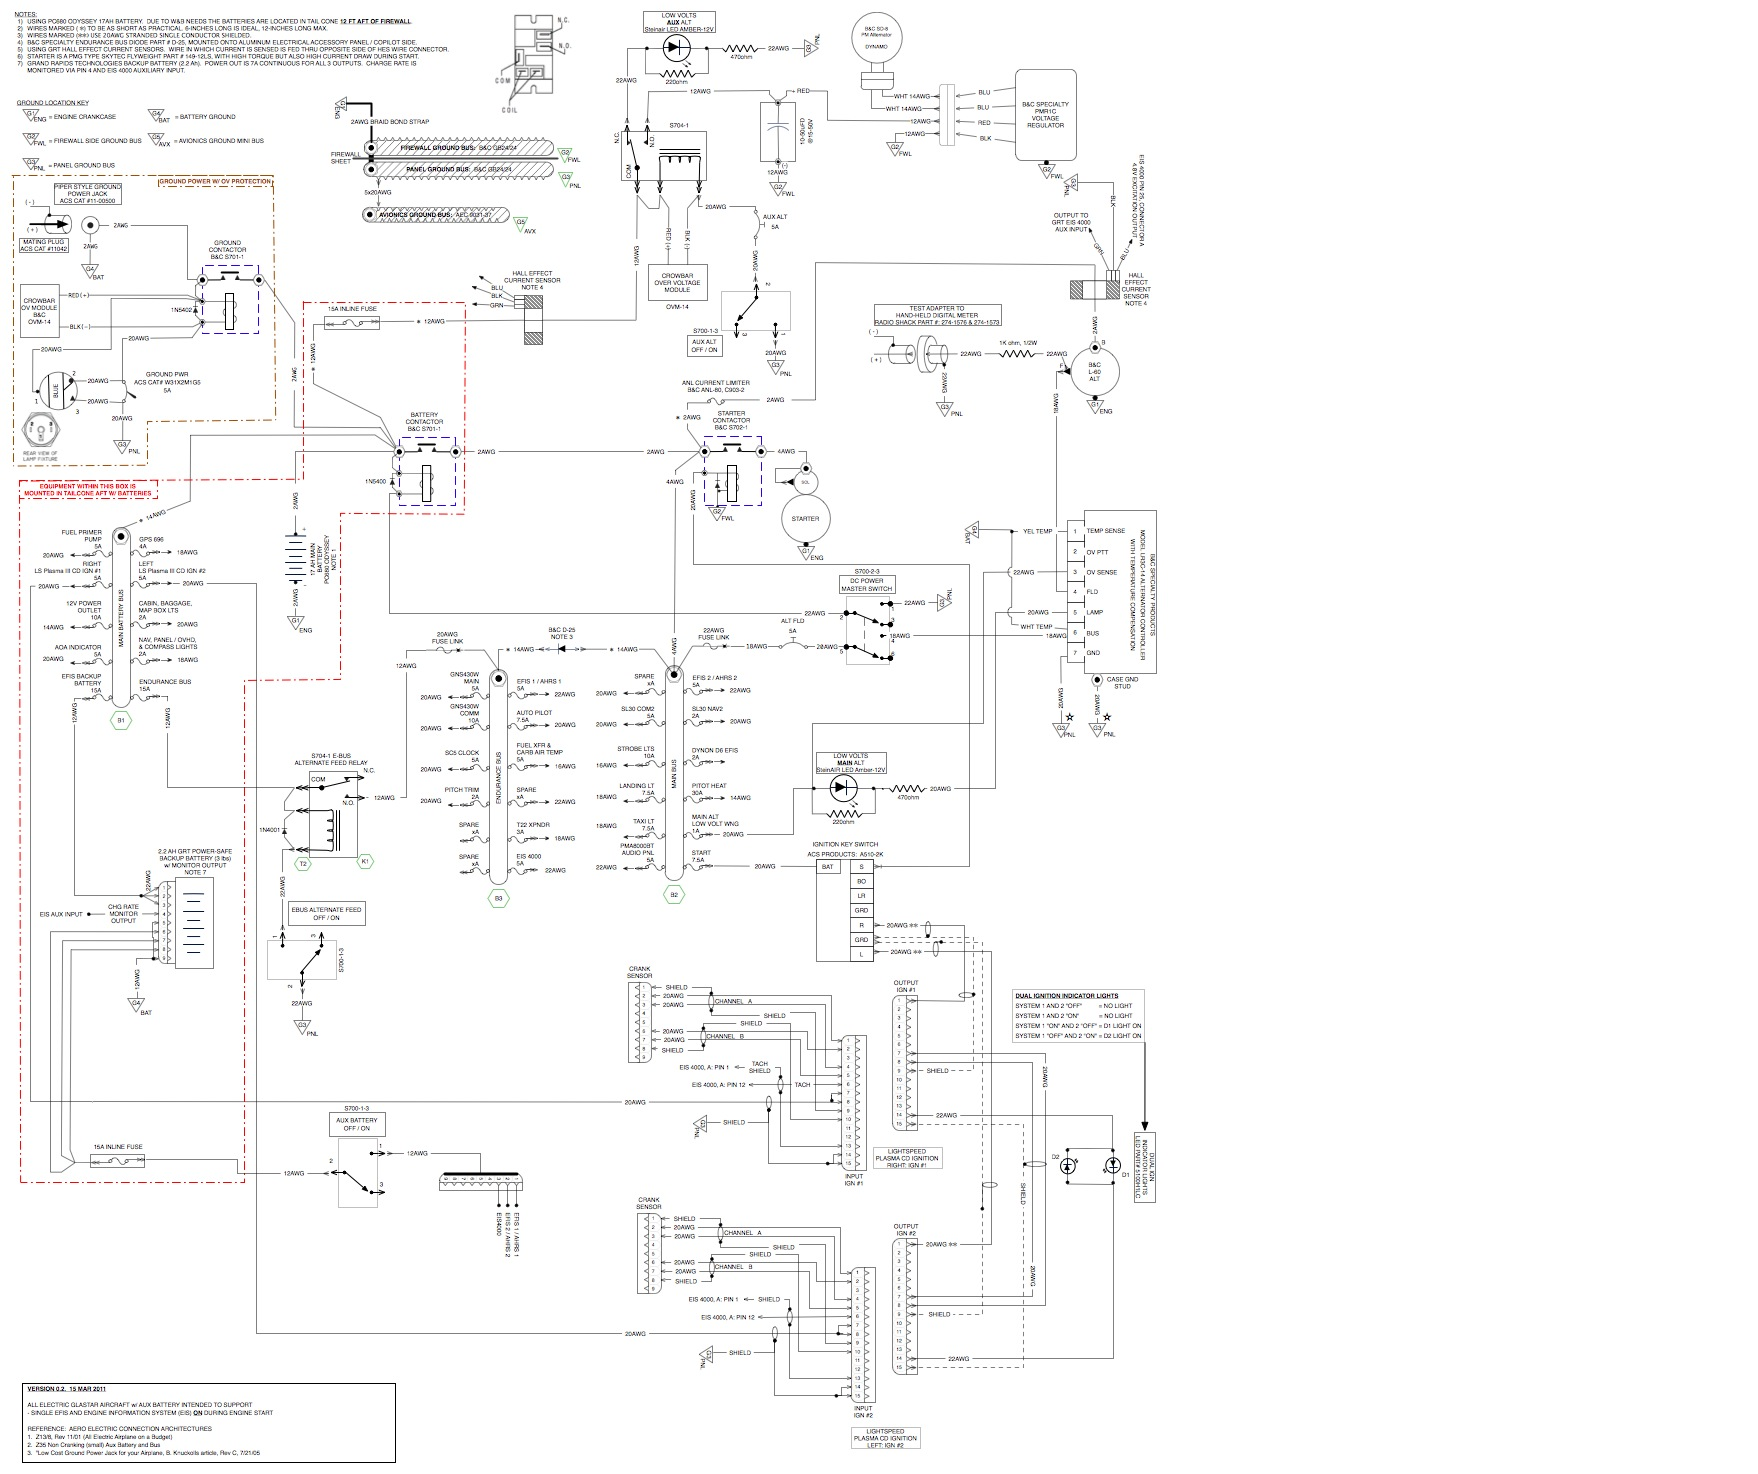 glastar_schematic_v0p2_15mar2011_for_review_148 matronics email lists view topic need help in reviewing z10 8 skytec starter wiring diagram at webbmarketing.co